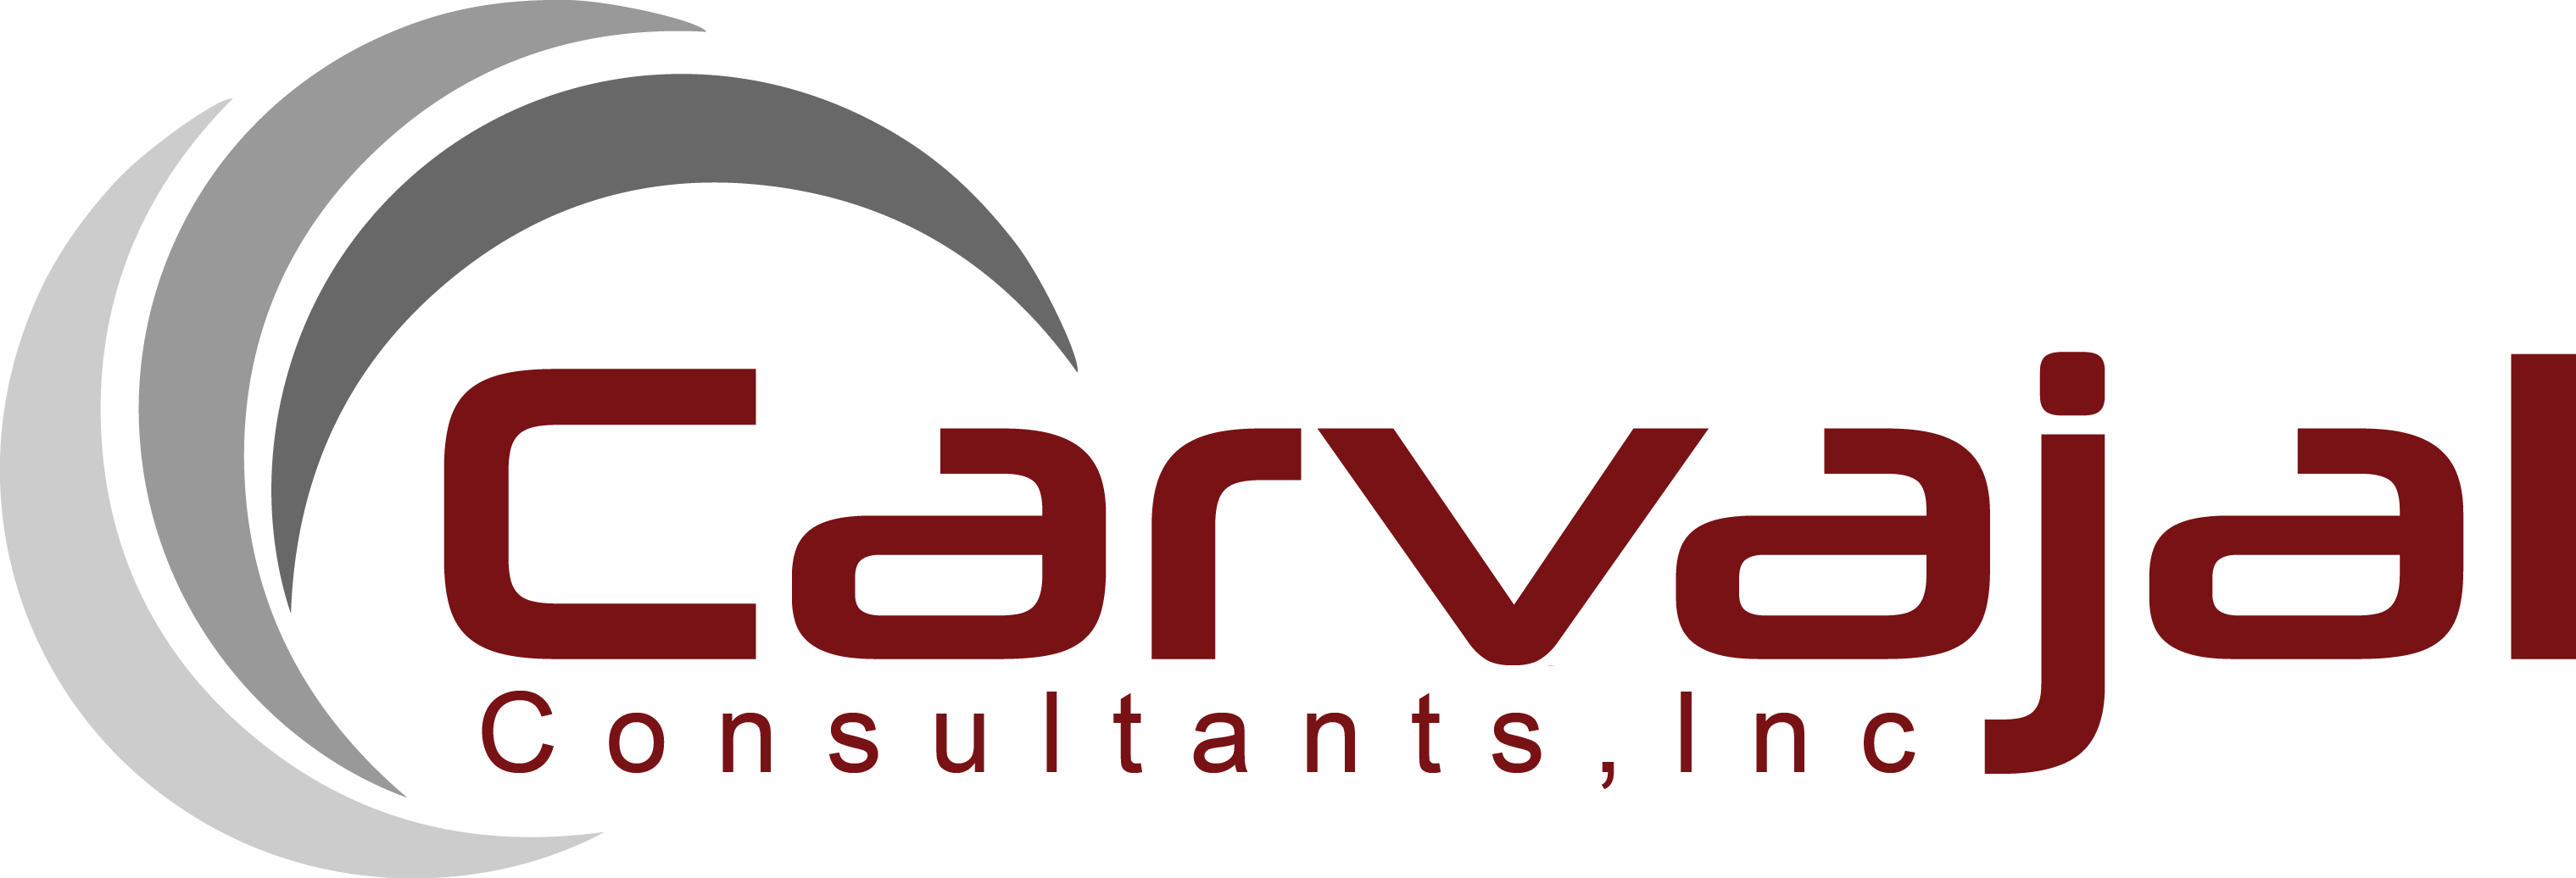 Carvajal Consultants, Inc.